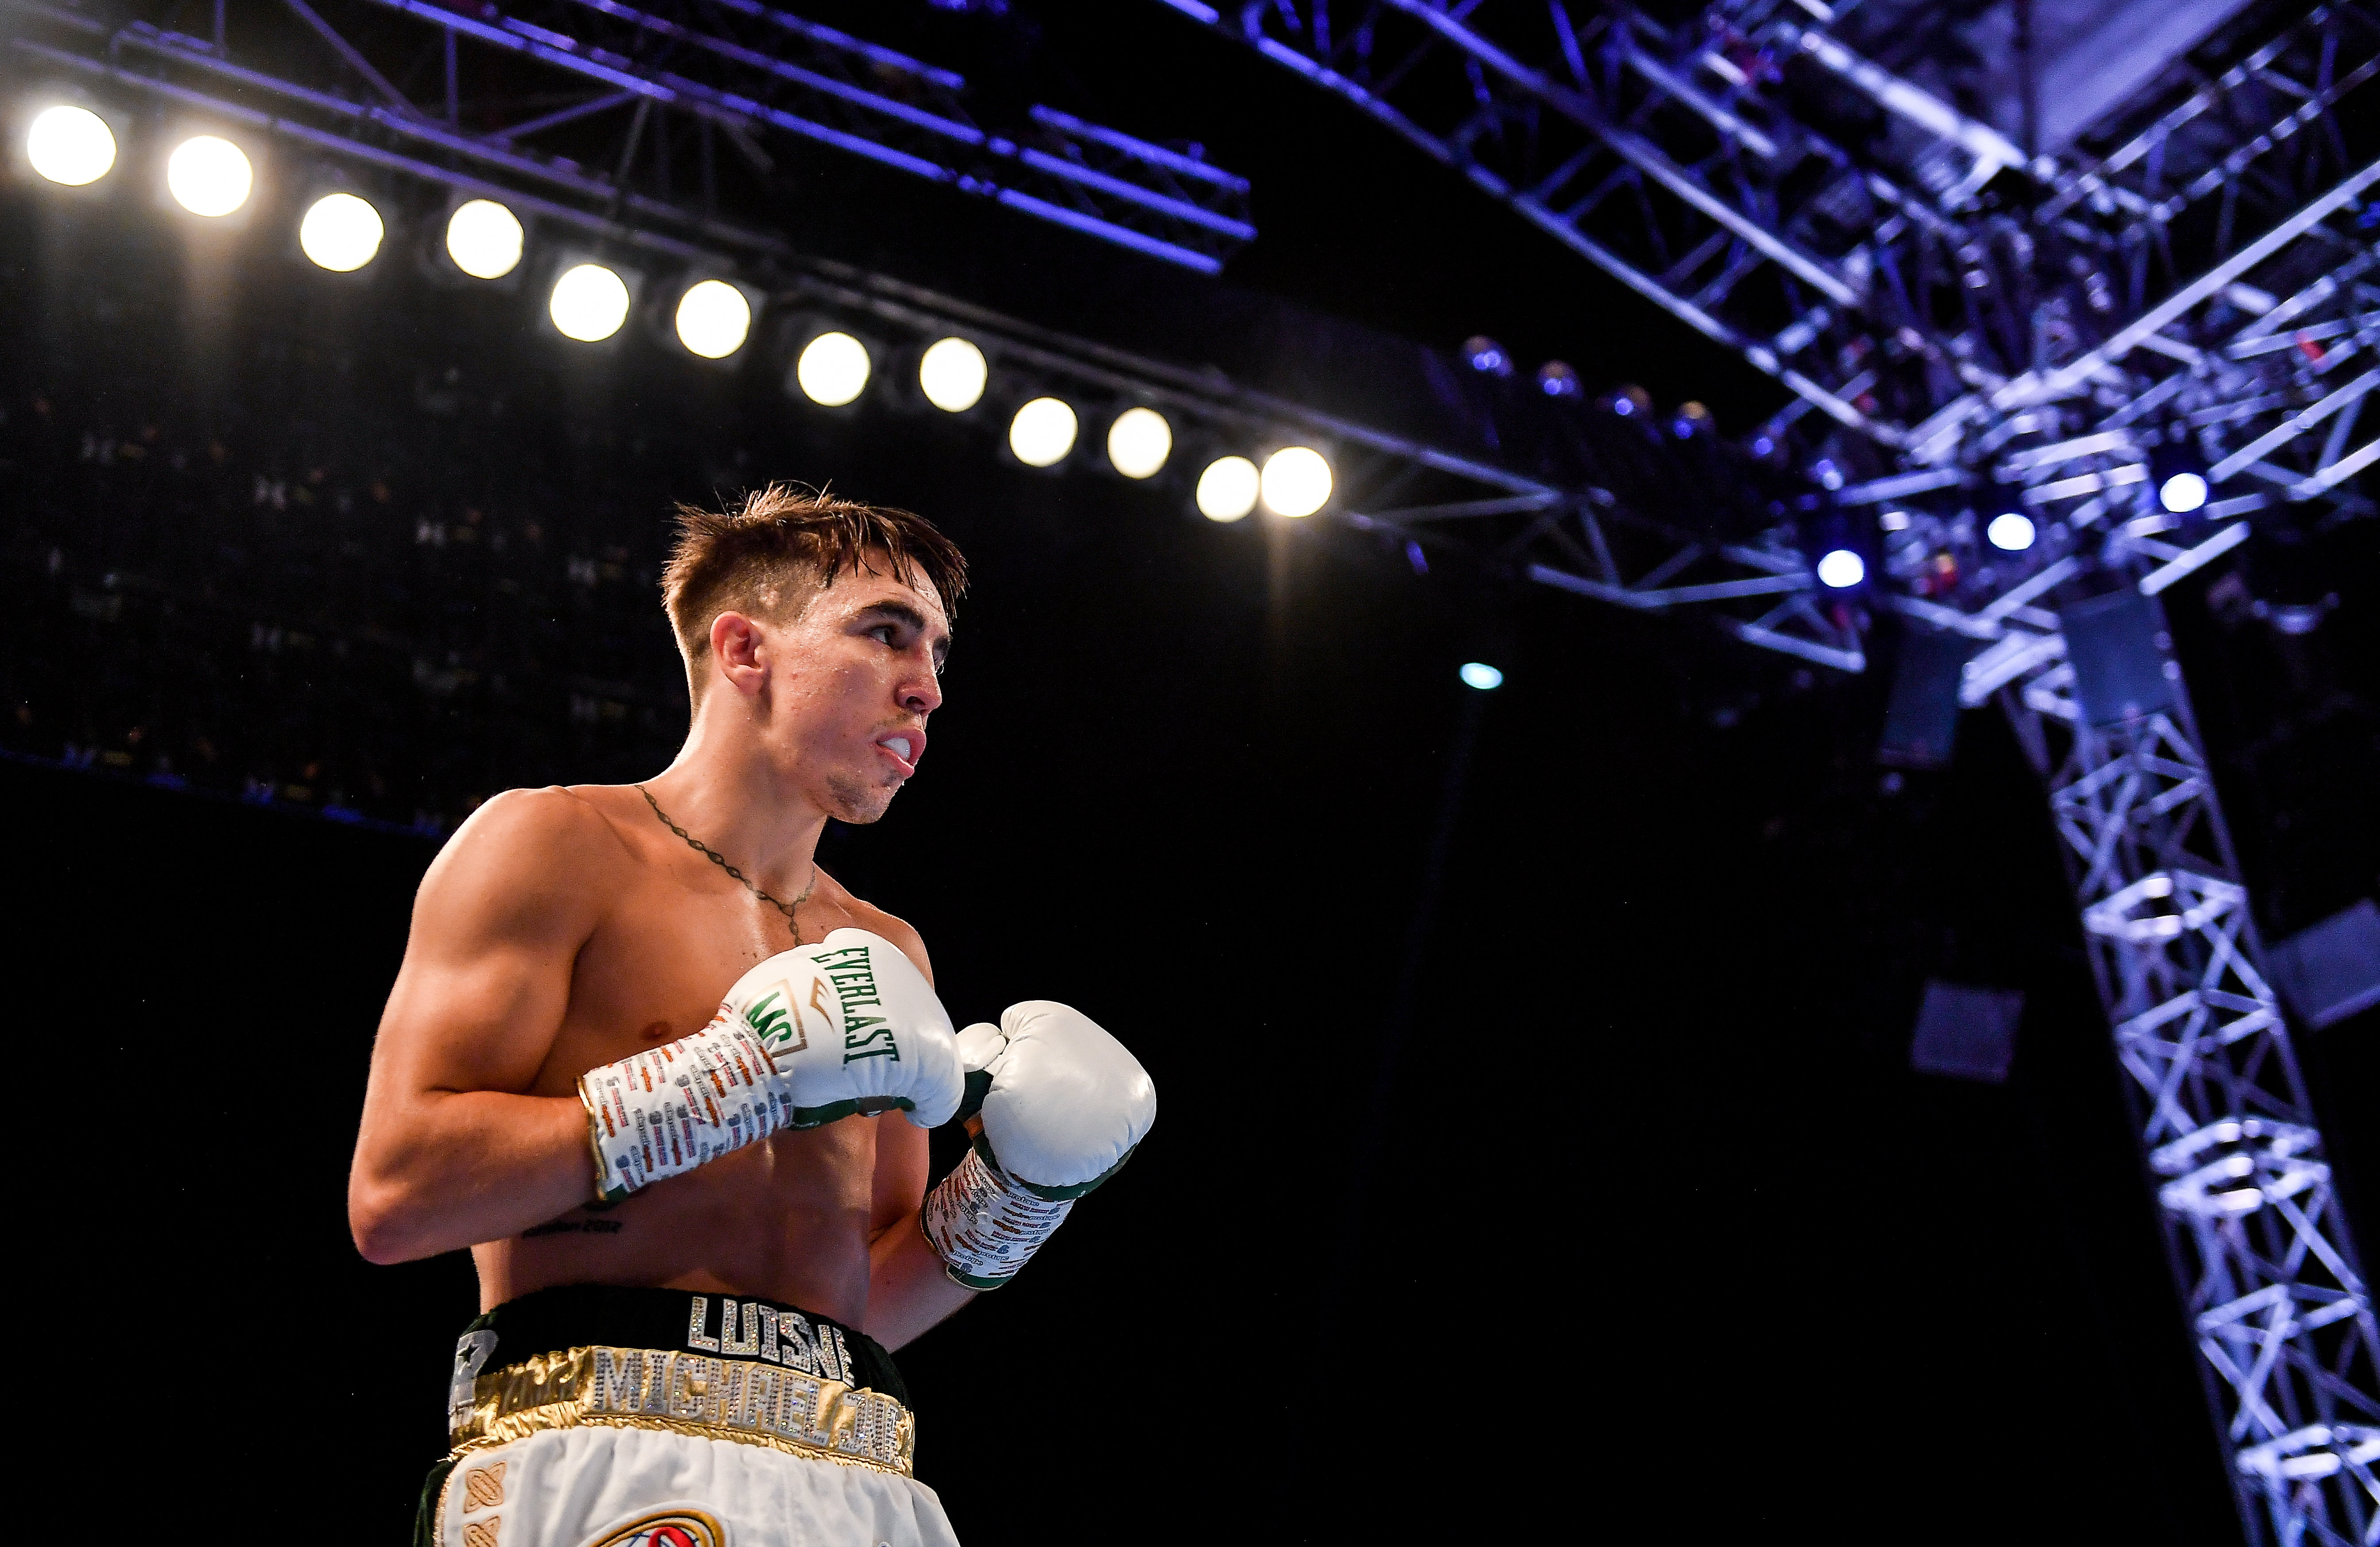 Michael Conlan during his WBA and WBO Inter-Continental Featherweight title bout against Diego Alberto Ruiz at Falls Park in Belfast.